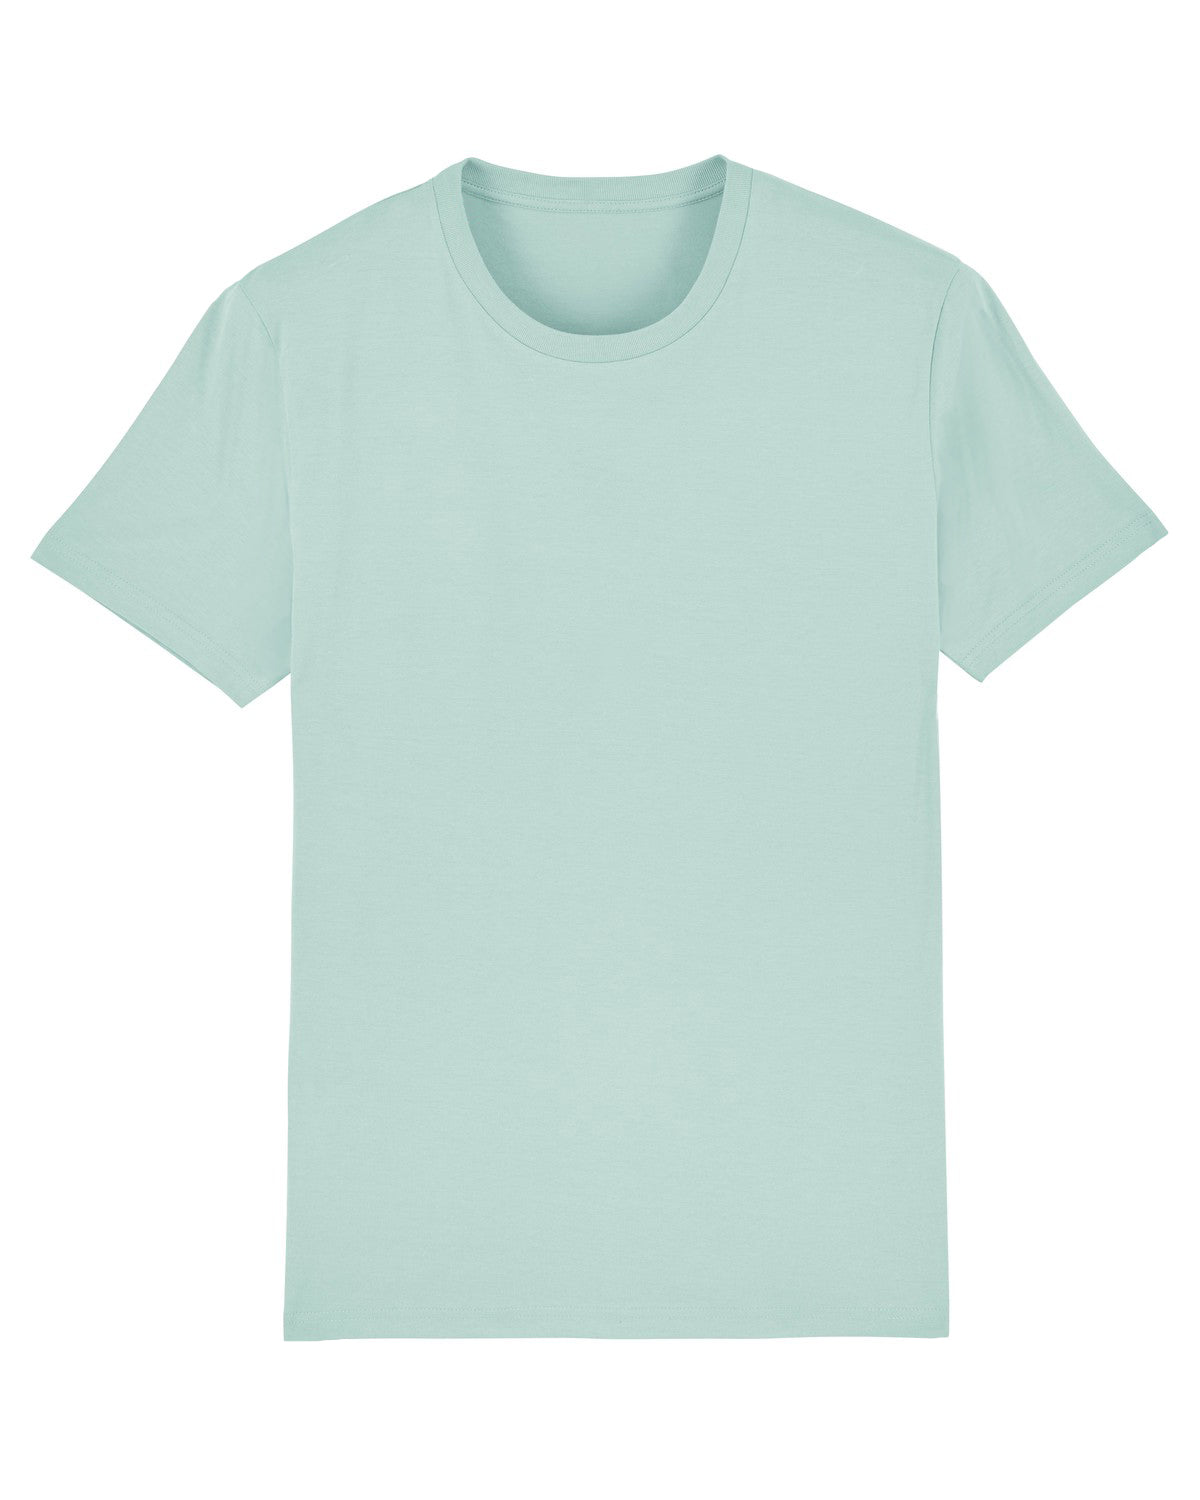 Attenborough Organic T-Shirt - Light Turquoise